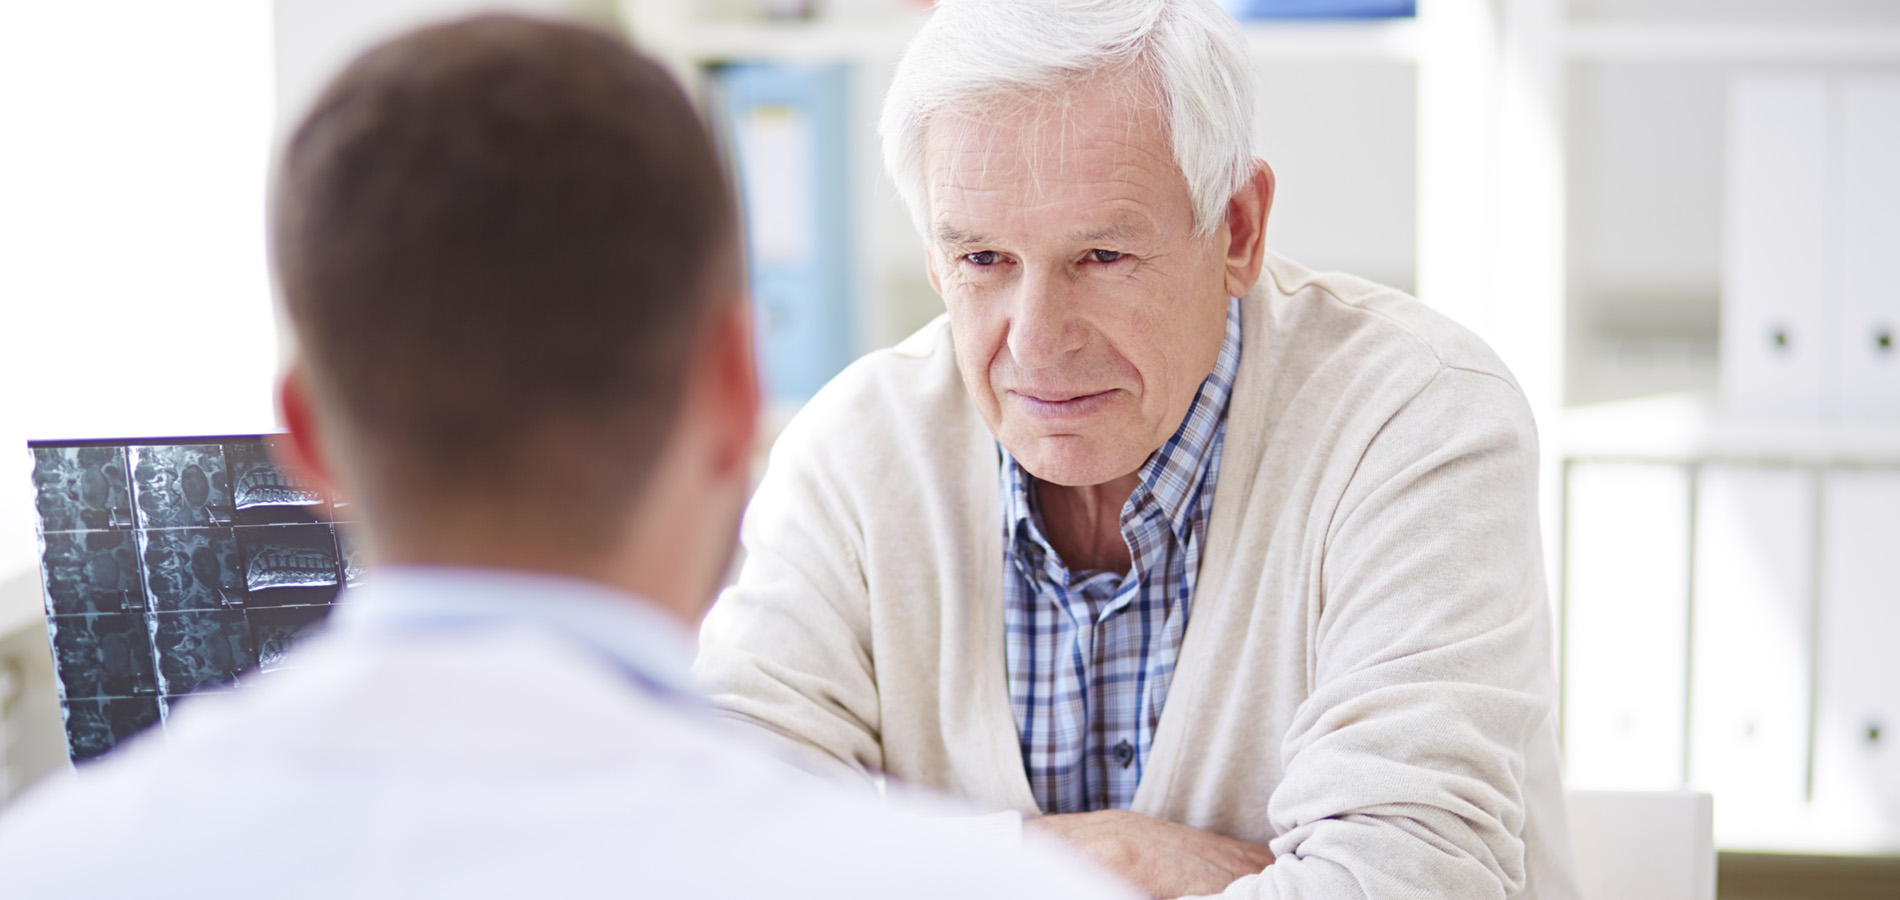 Cancer patient dating service